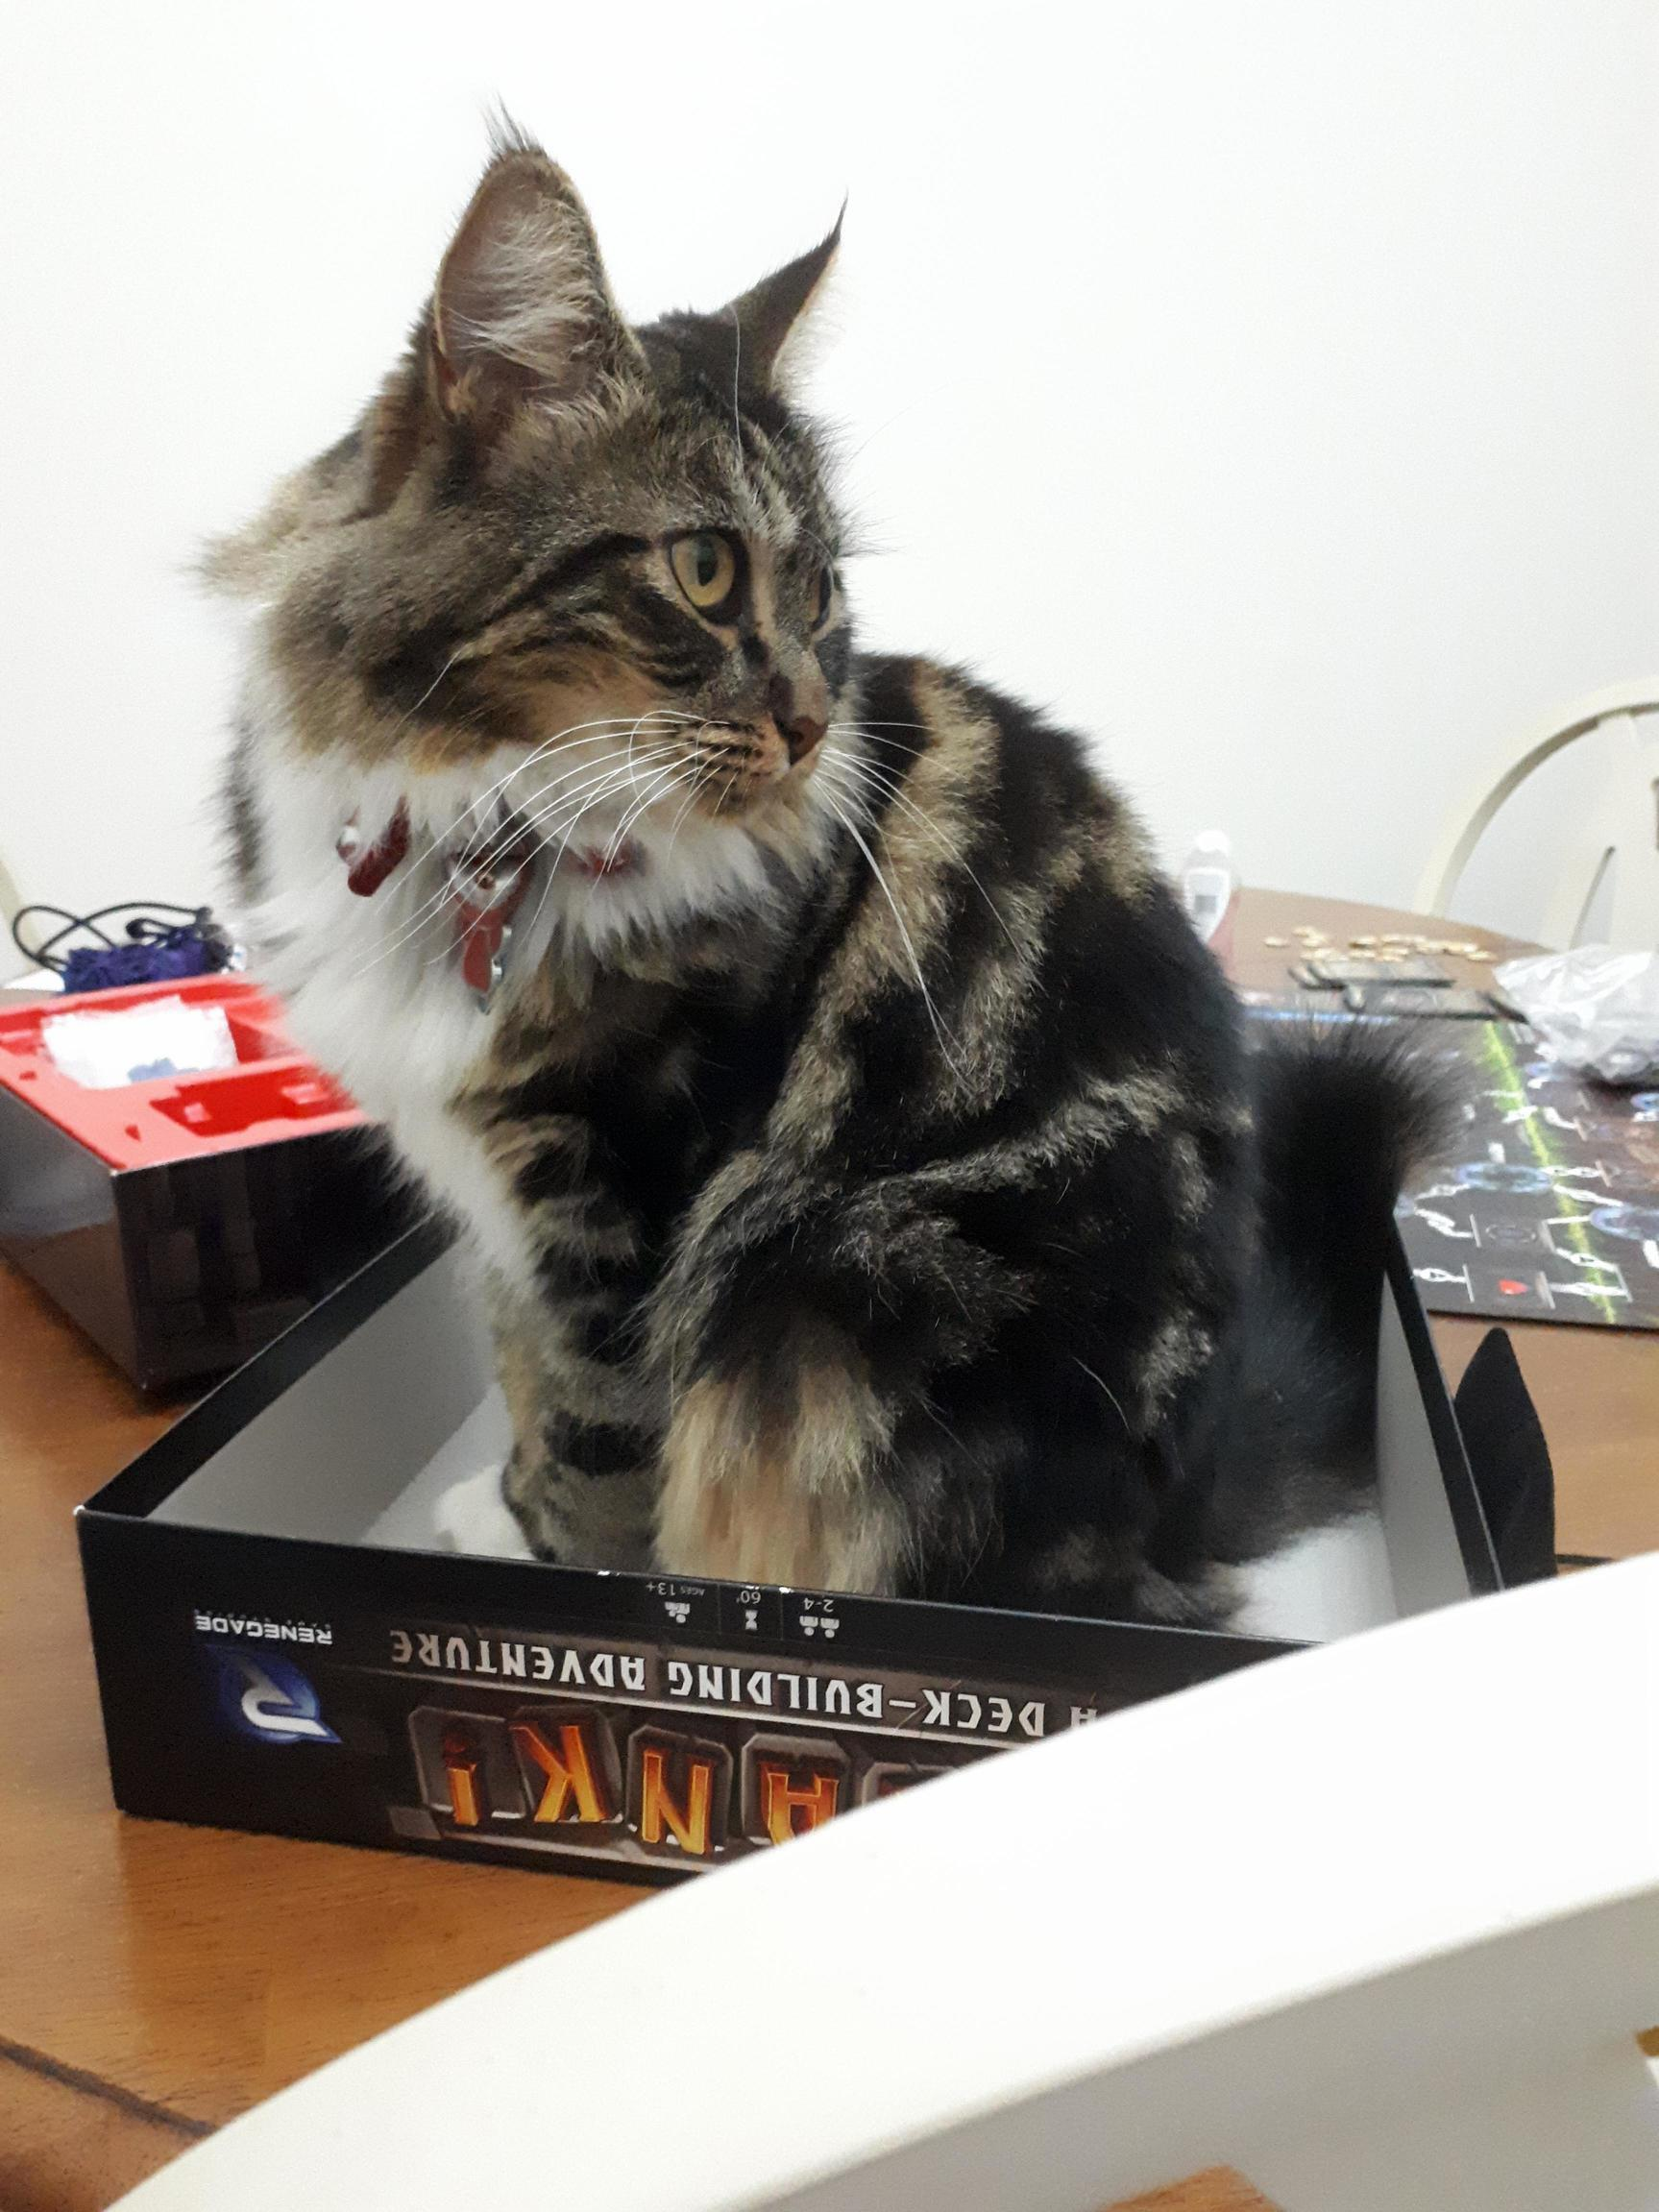 Im borrowing clank from a relative. it came with a cat trap.